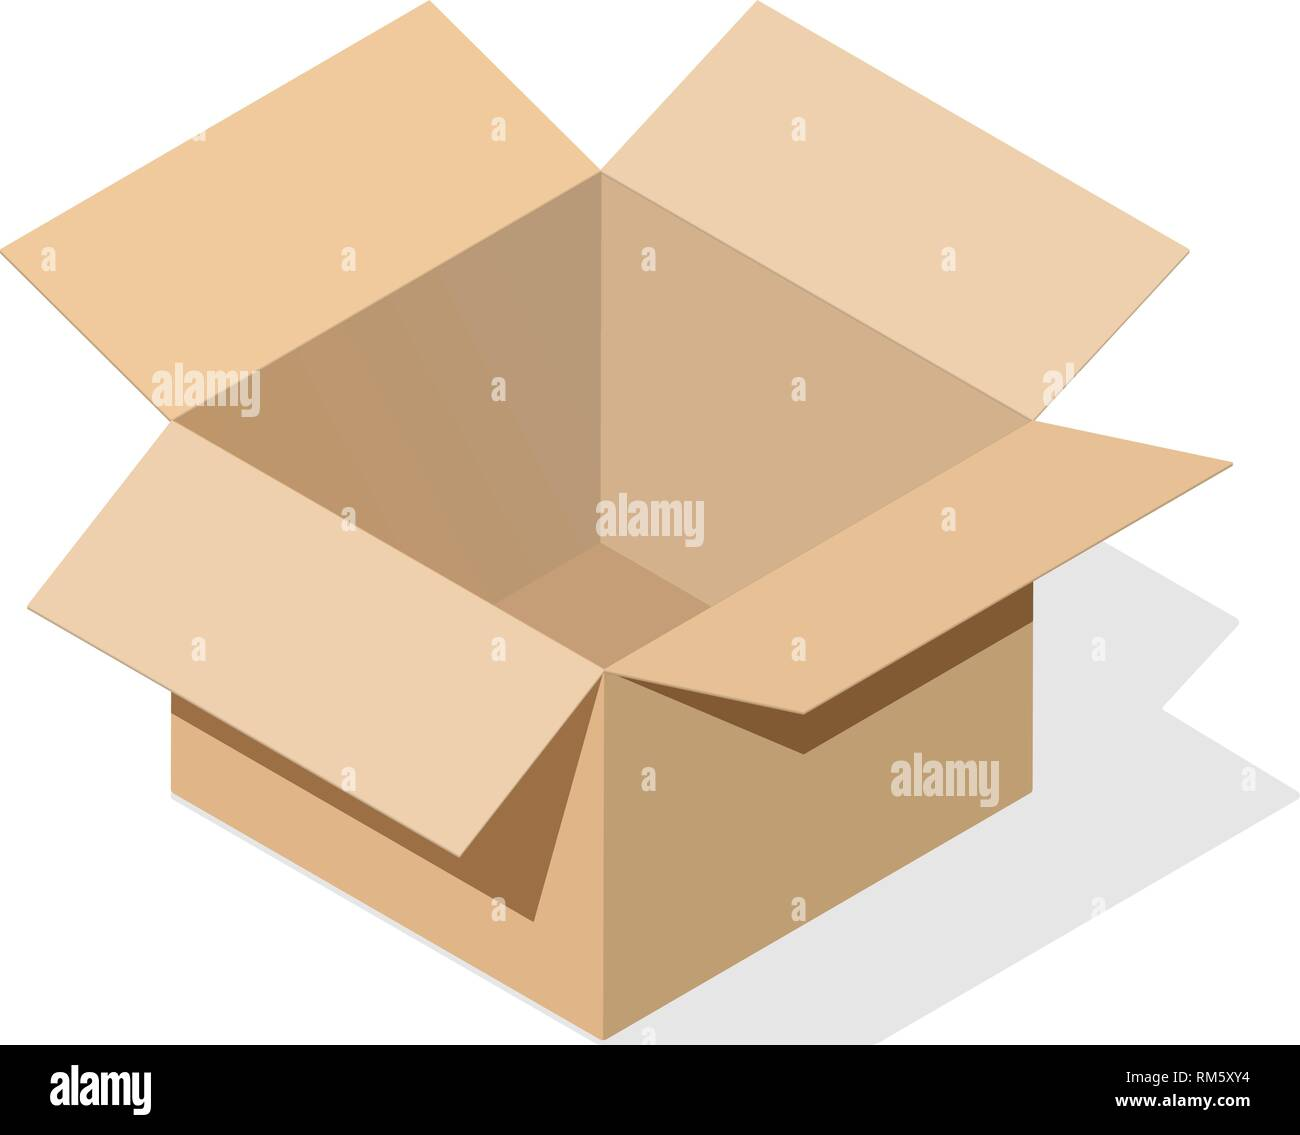 Miniature 3D box in an open version of light brown cardboard. Object on a white background with a flat shadow for icons, ads, banners, filling sites. - Stock Vector